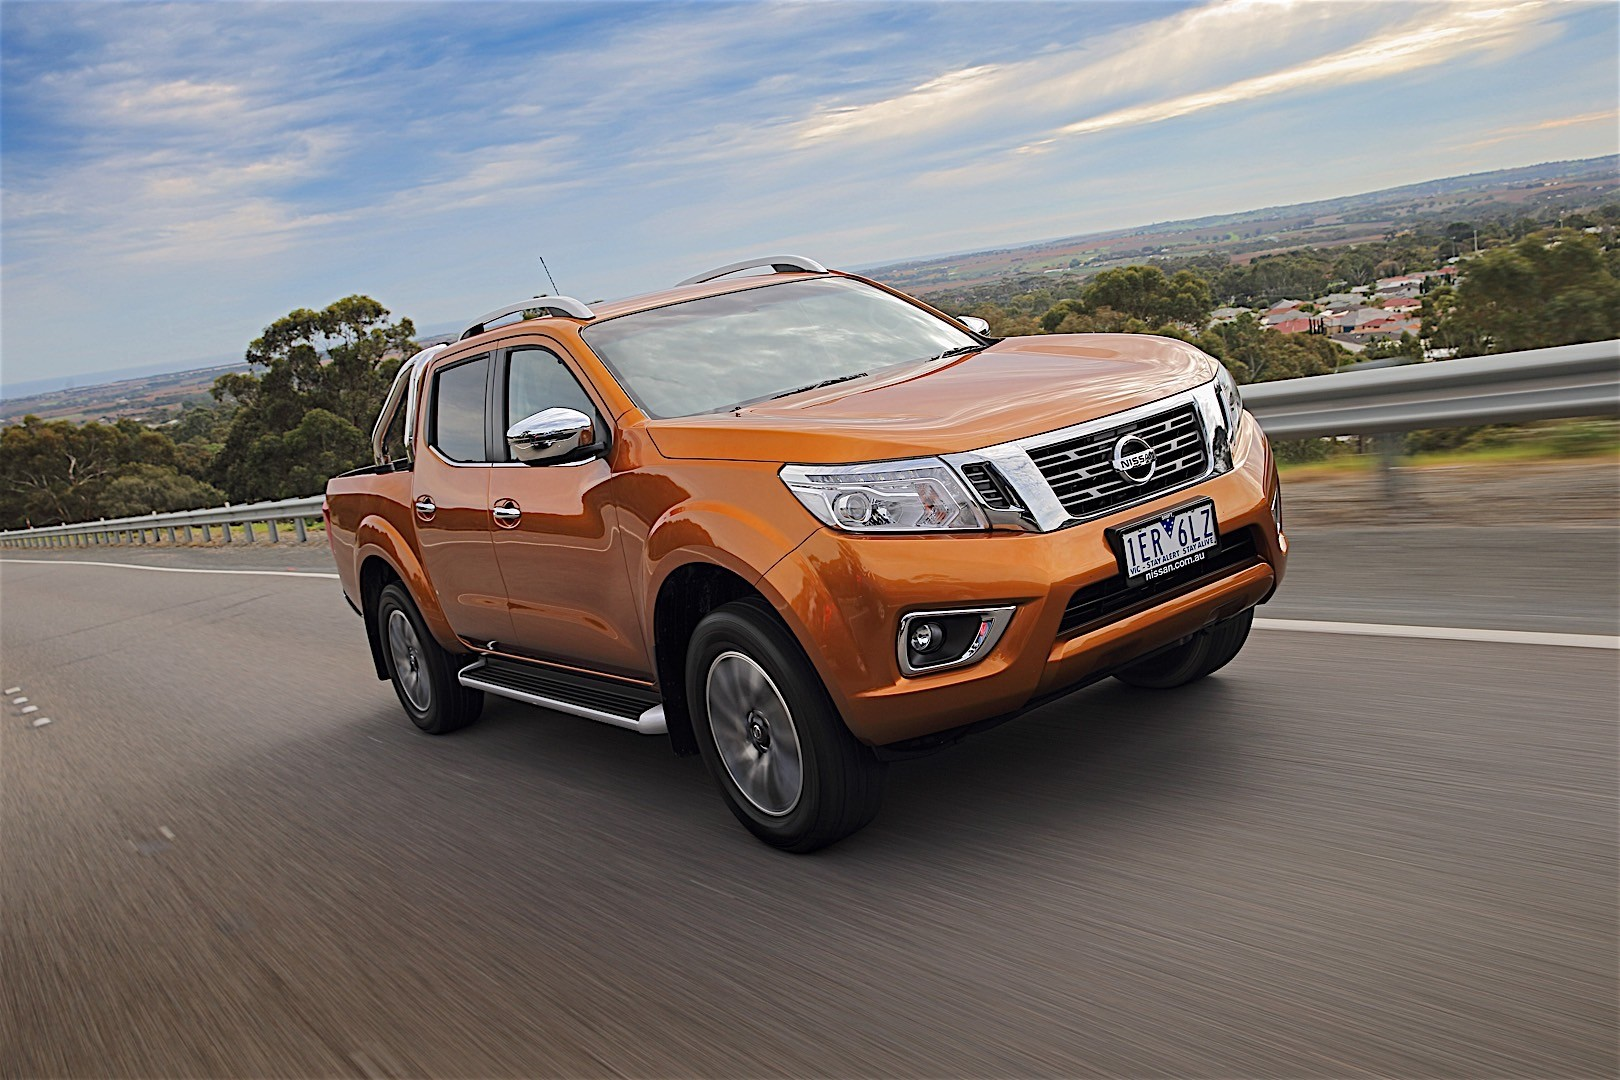 nissan navara np300 double cab specs 2015 2016 2017 2018 autoevolution. Black Bedroom Furniture Sets. Home Design Ideas